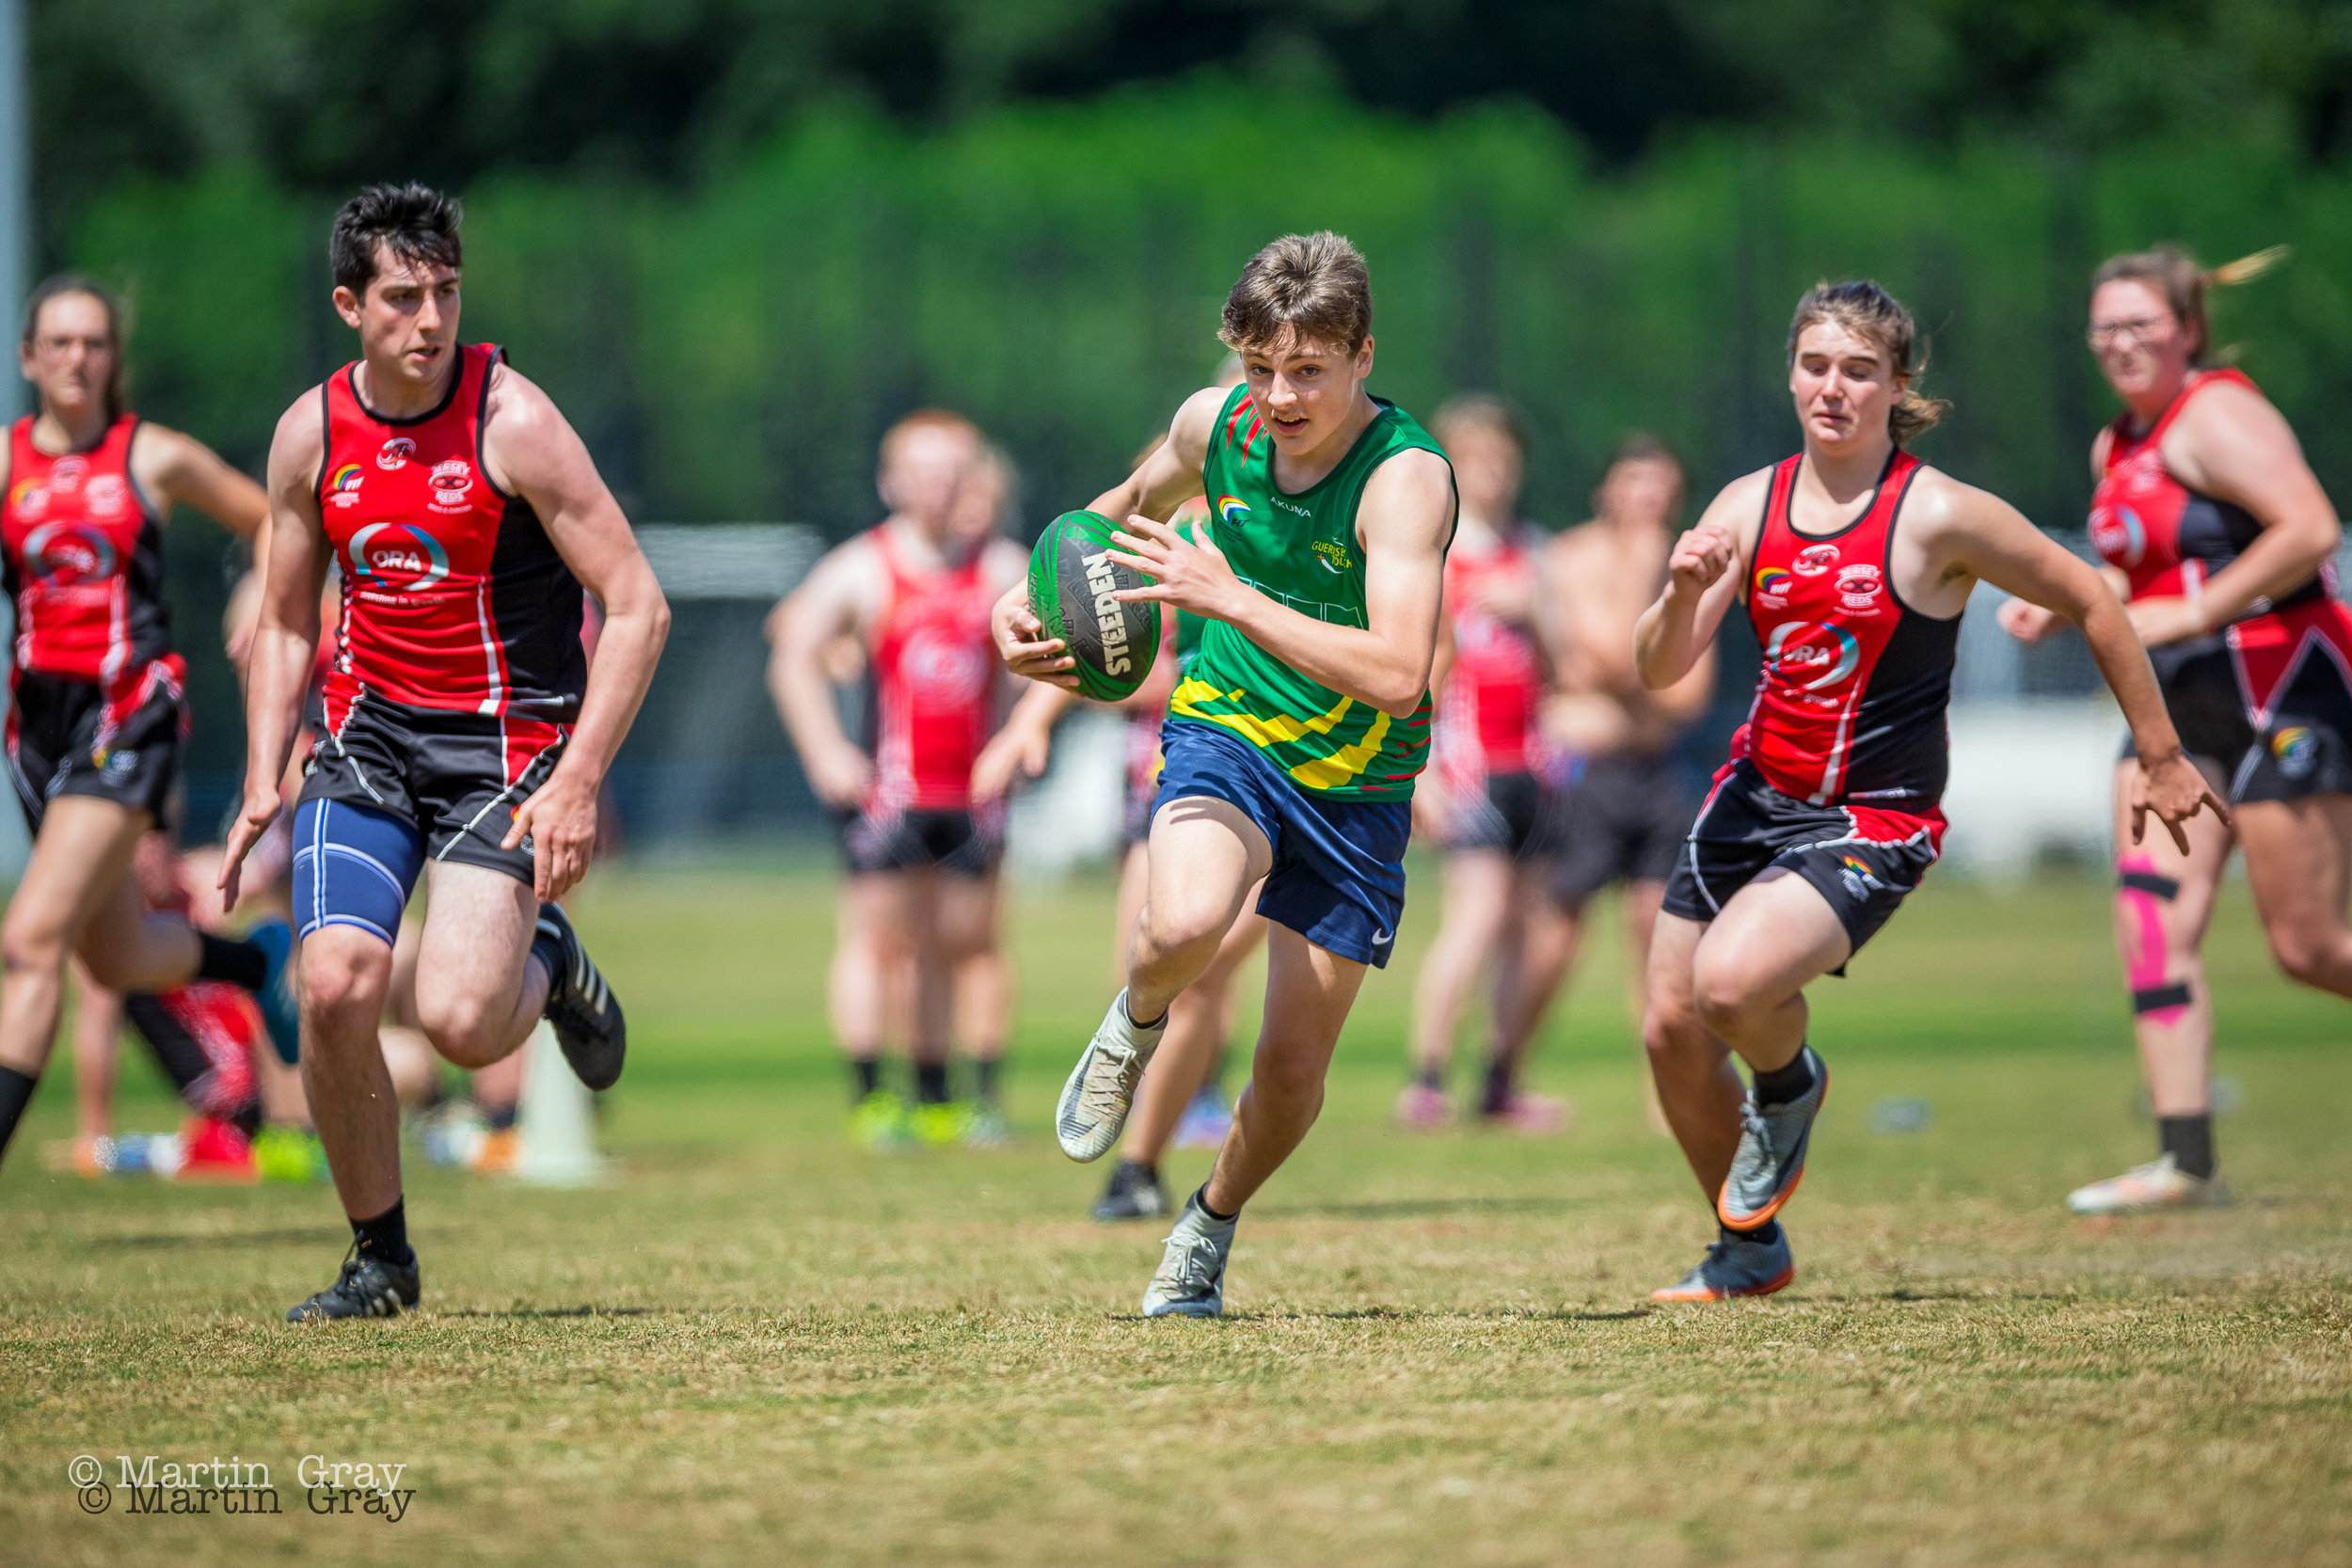 Guernsey v Jersey Touch Rugby Inter-Insulars 2018... Played at KGV Playing Fields 23rd June 2018... Mixed, Mens, Ladies, U18's and Senior Men...